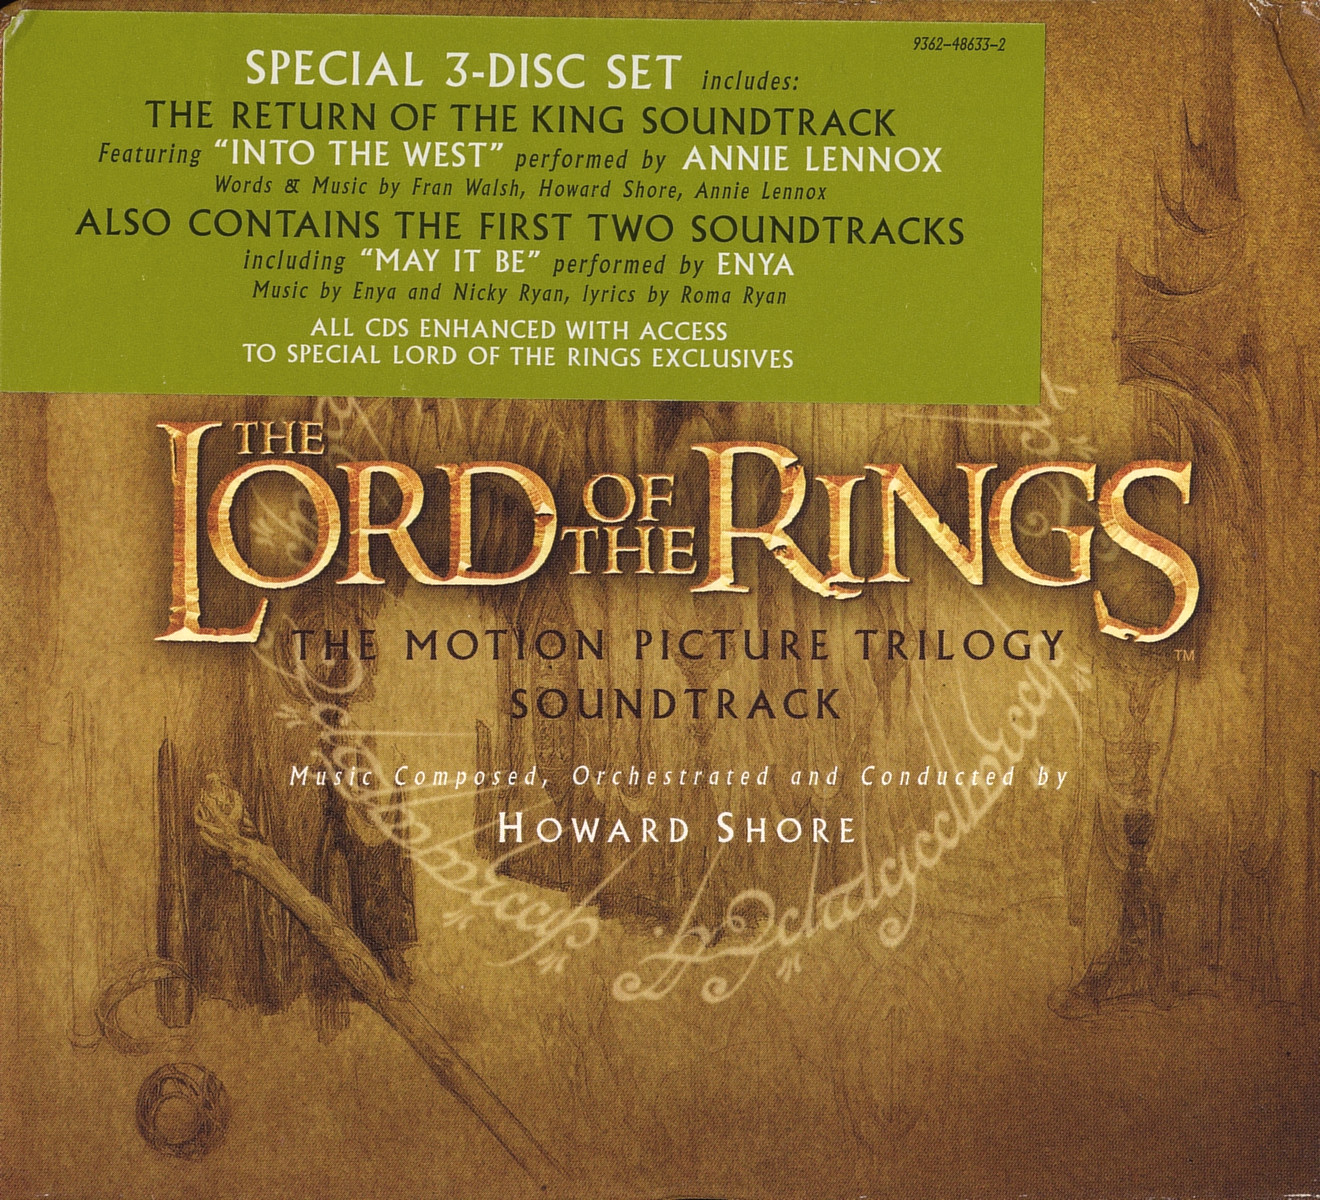 The Lord of the Rings Motion Picture Trilogy Soundtrack Album Art Covers